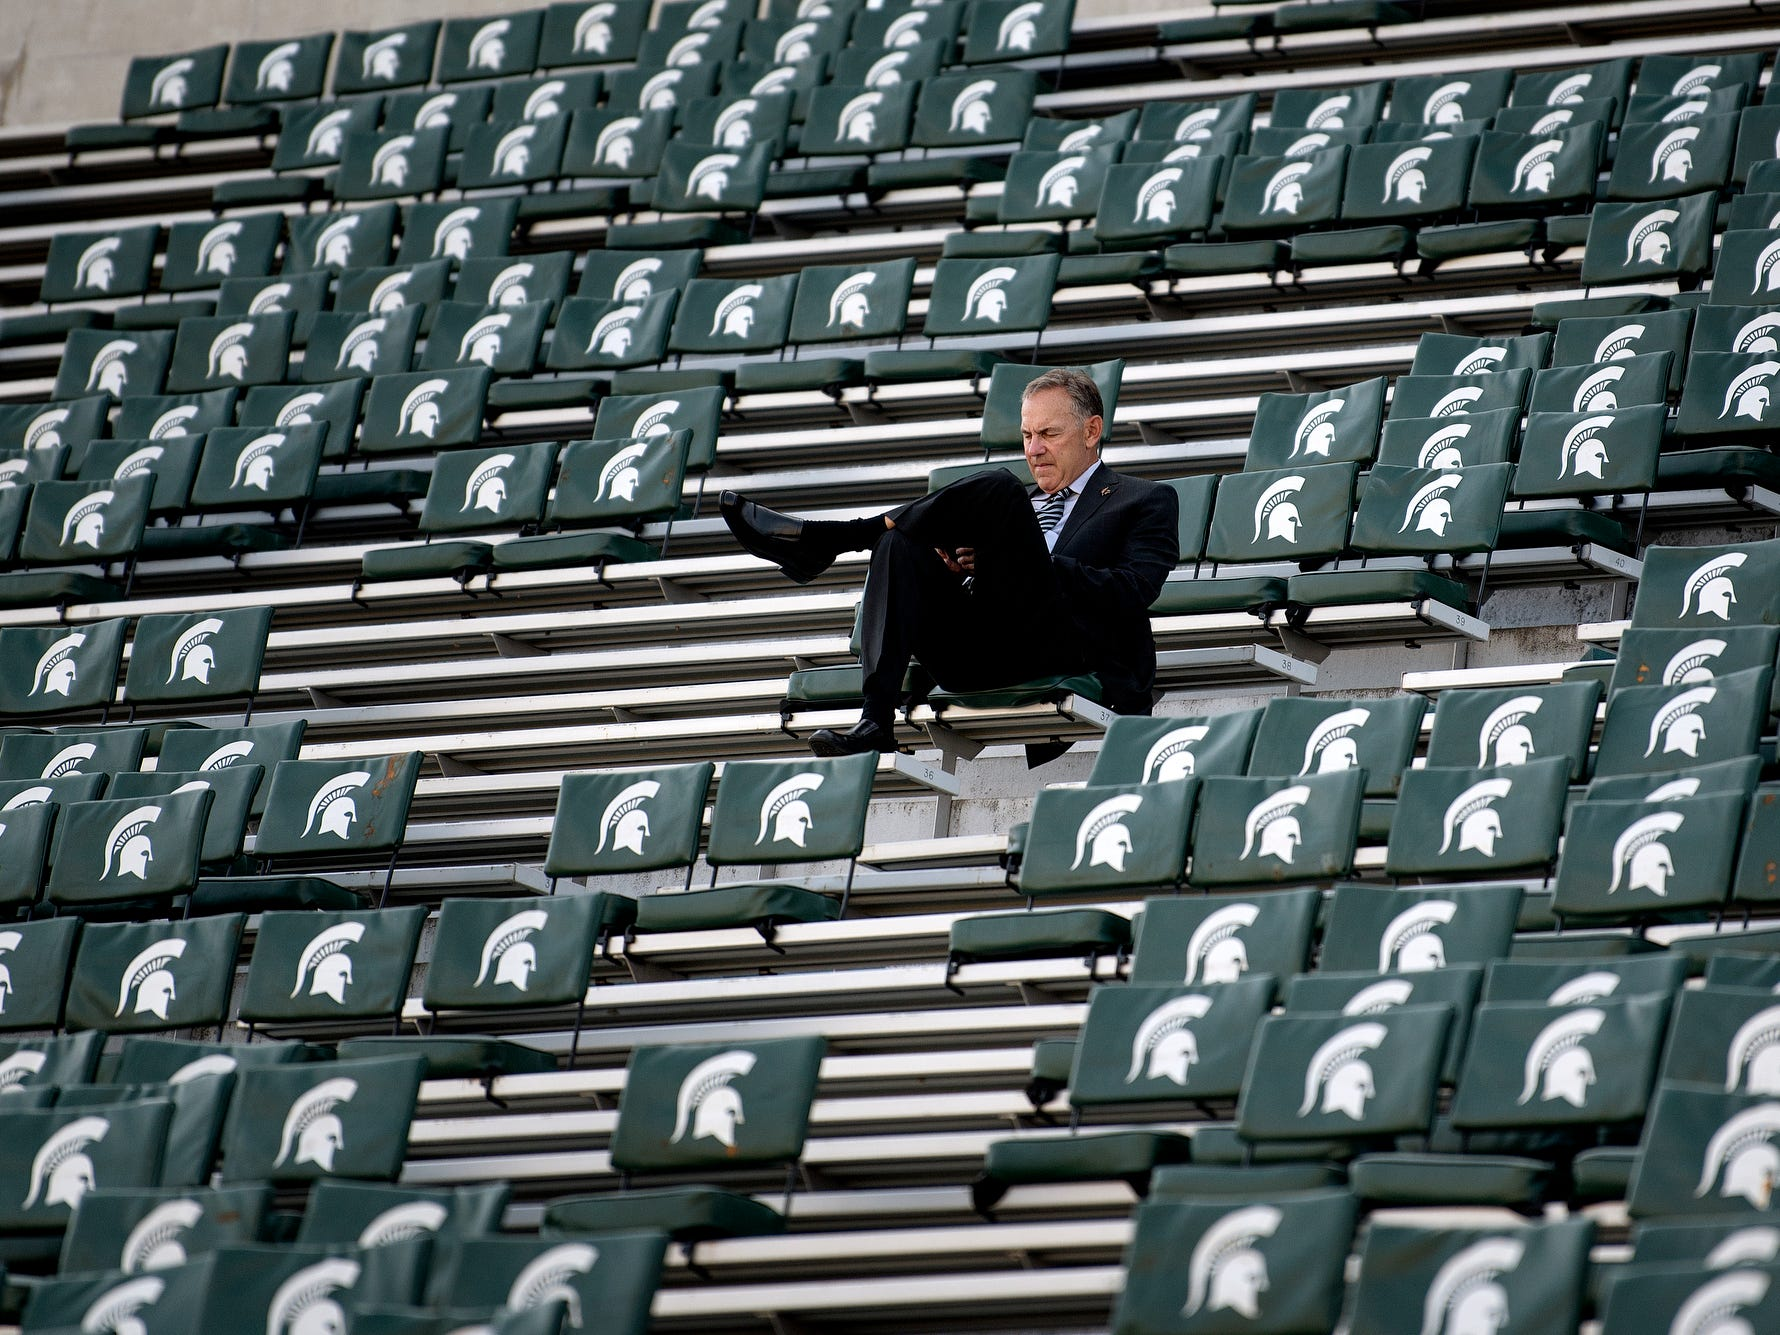 Michigan State's head coach Mark Dantonio sits alone in the stands before the Spartans' game against Utah State on Friday, Aug. 31, 2018, at Spartan Stadium in East Lansing.